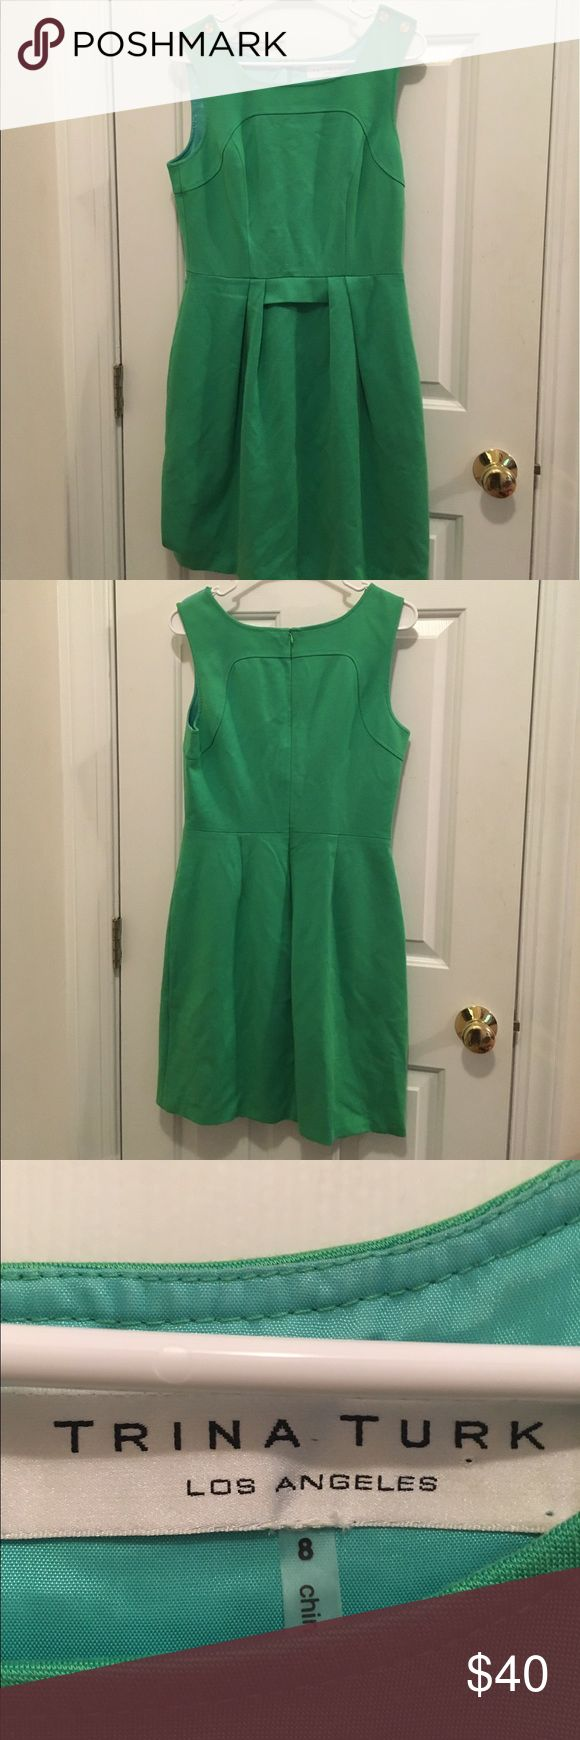 """Size 8 Trina Turk Dress Beautiful size 8 Trina Turk dress, lovely shade of green with golden button accents on the shoulders and a lace trim on the lining that is meant to peek out from the bottom, no flaws or stains, measurements are 36"""" from shoulder to hem, 17"""" bustline and 14&1/2"""" waist. Excellent condition and gently used. Trina Turk Dresses"""